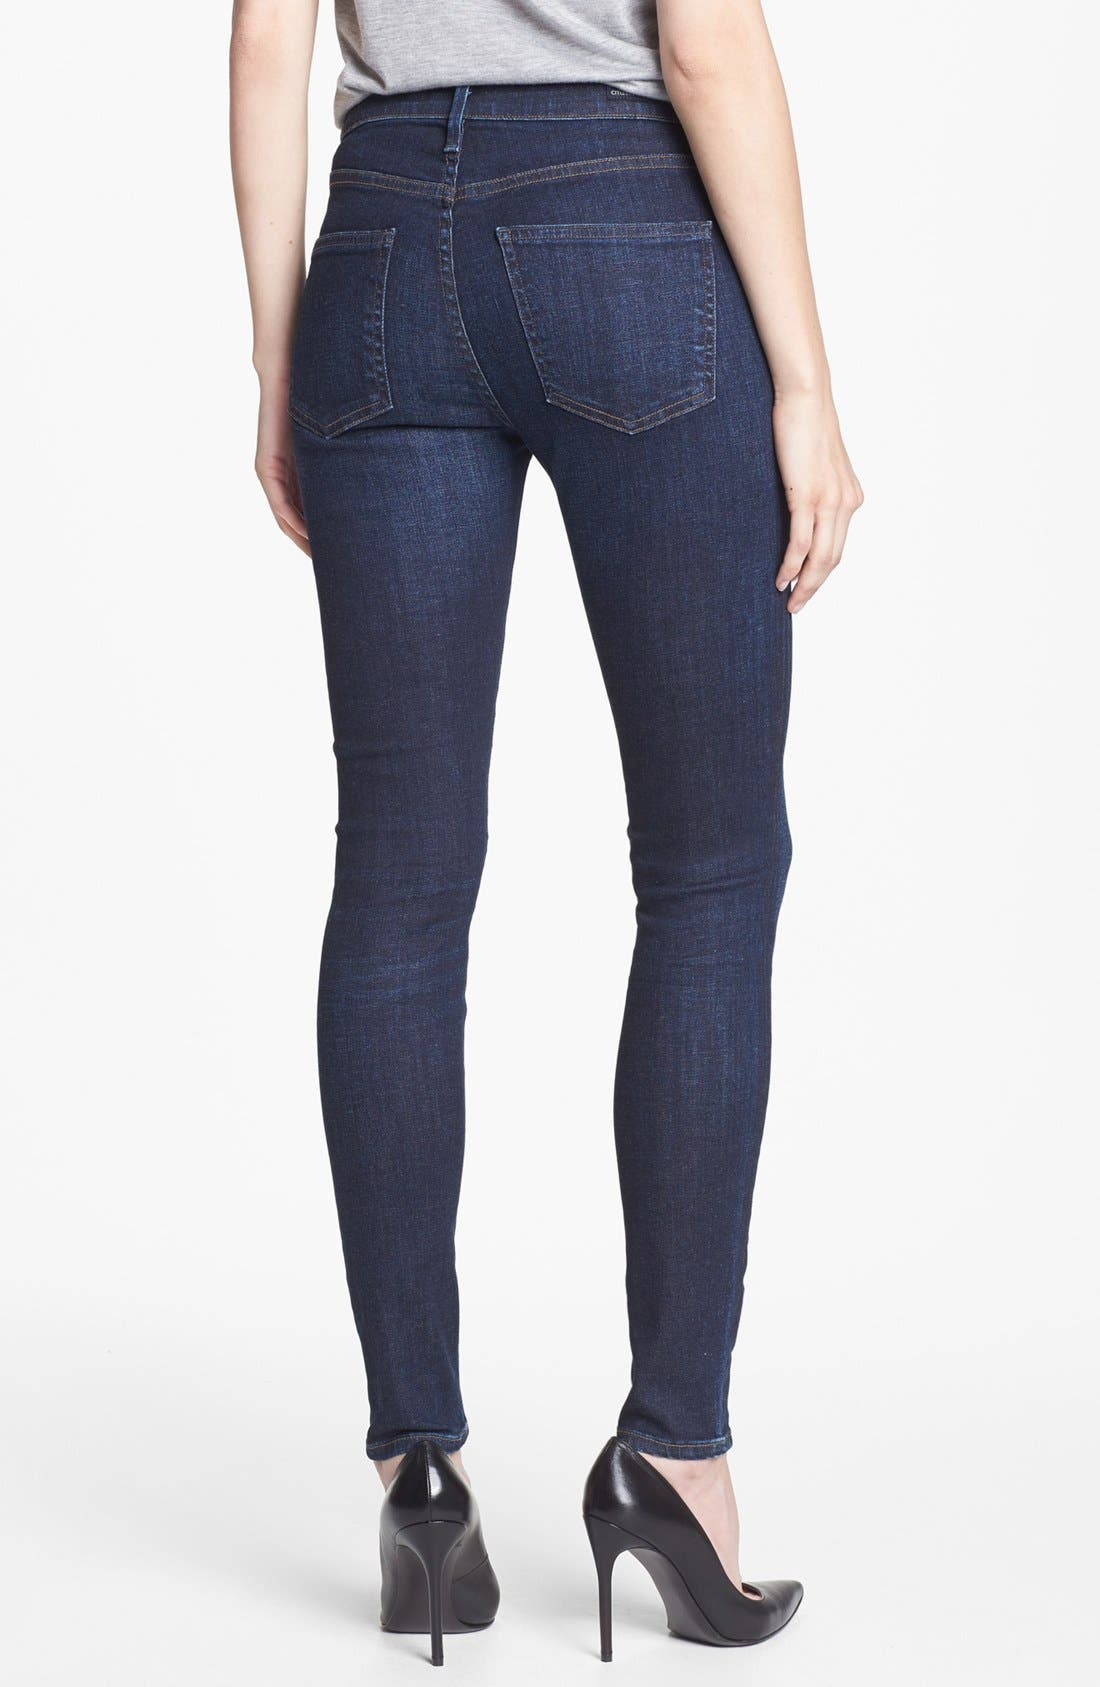 'Rocket' High Rise Skinny Jeans,                             Alternate thumbnail 2, color,                             Icon